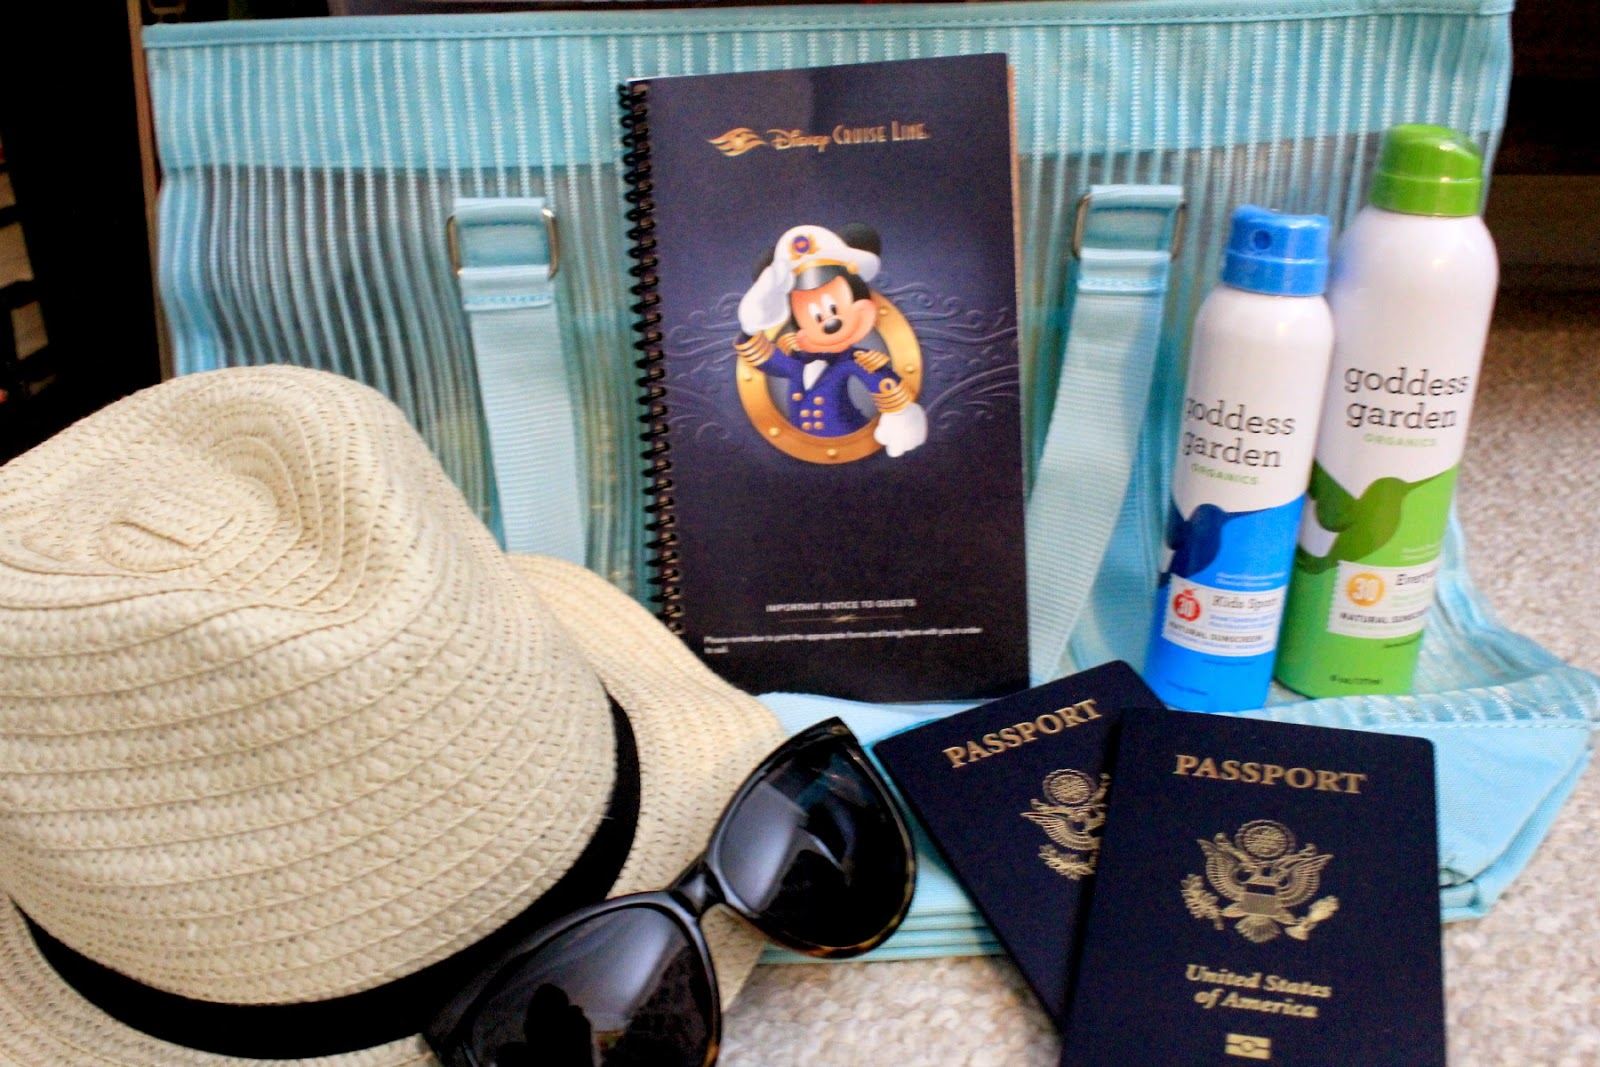 Cruise packing #GoddessGarden #ad